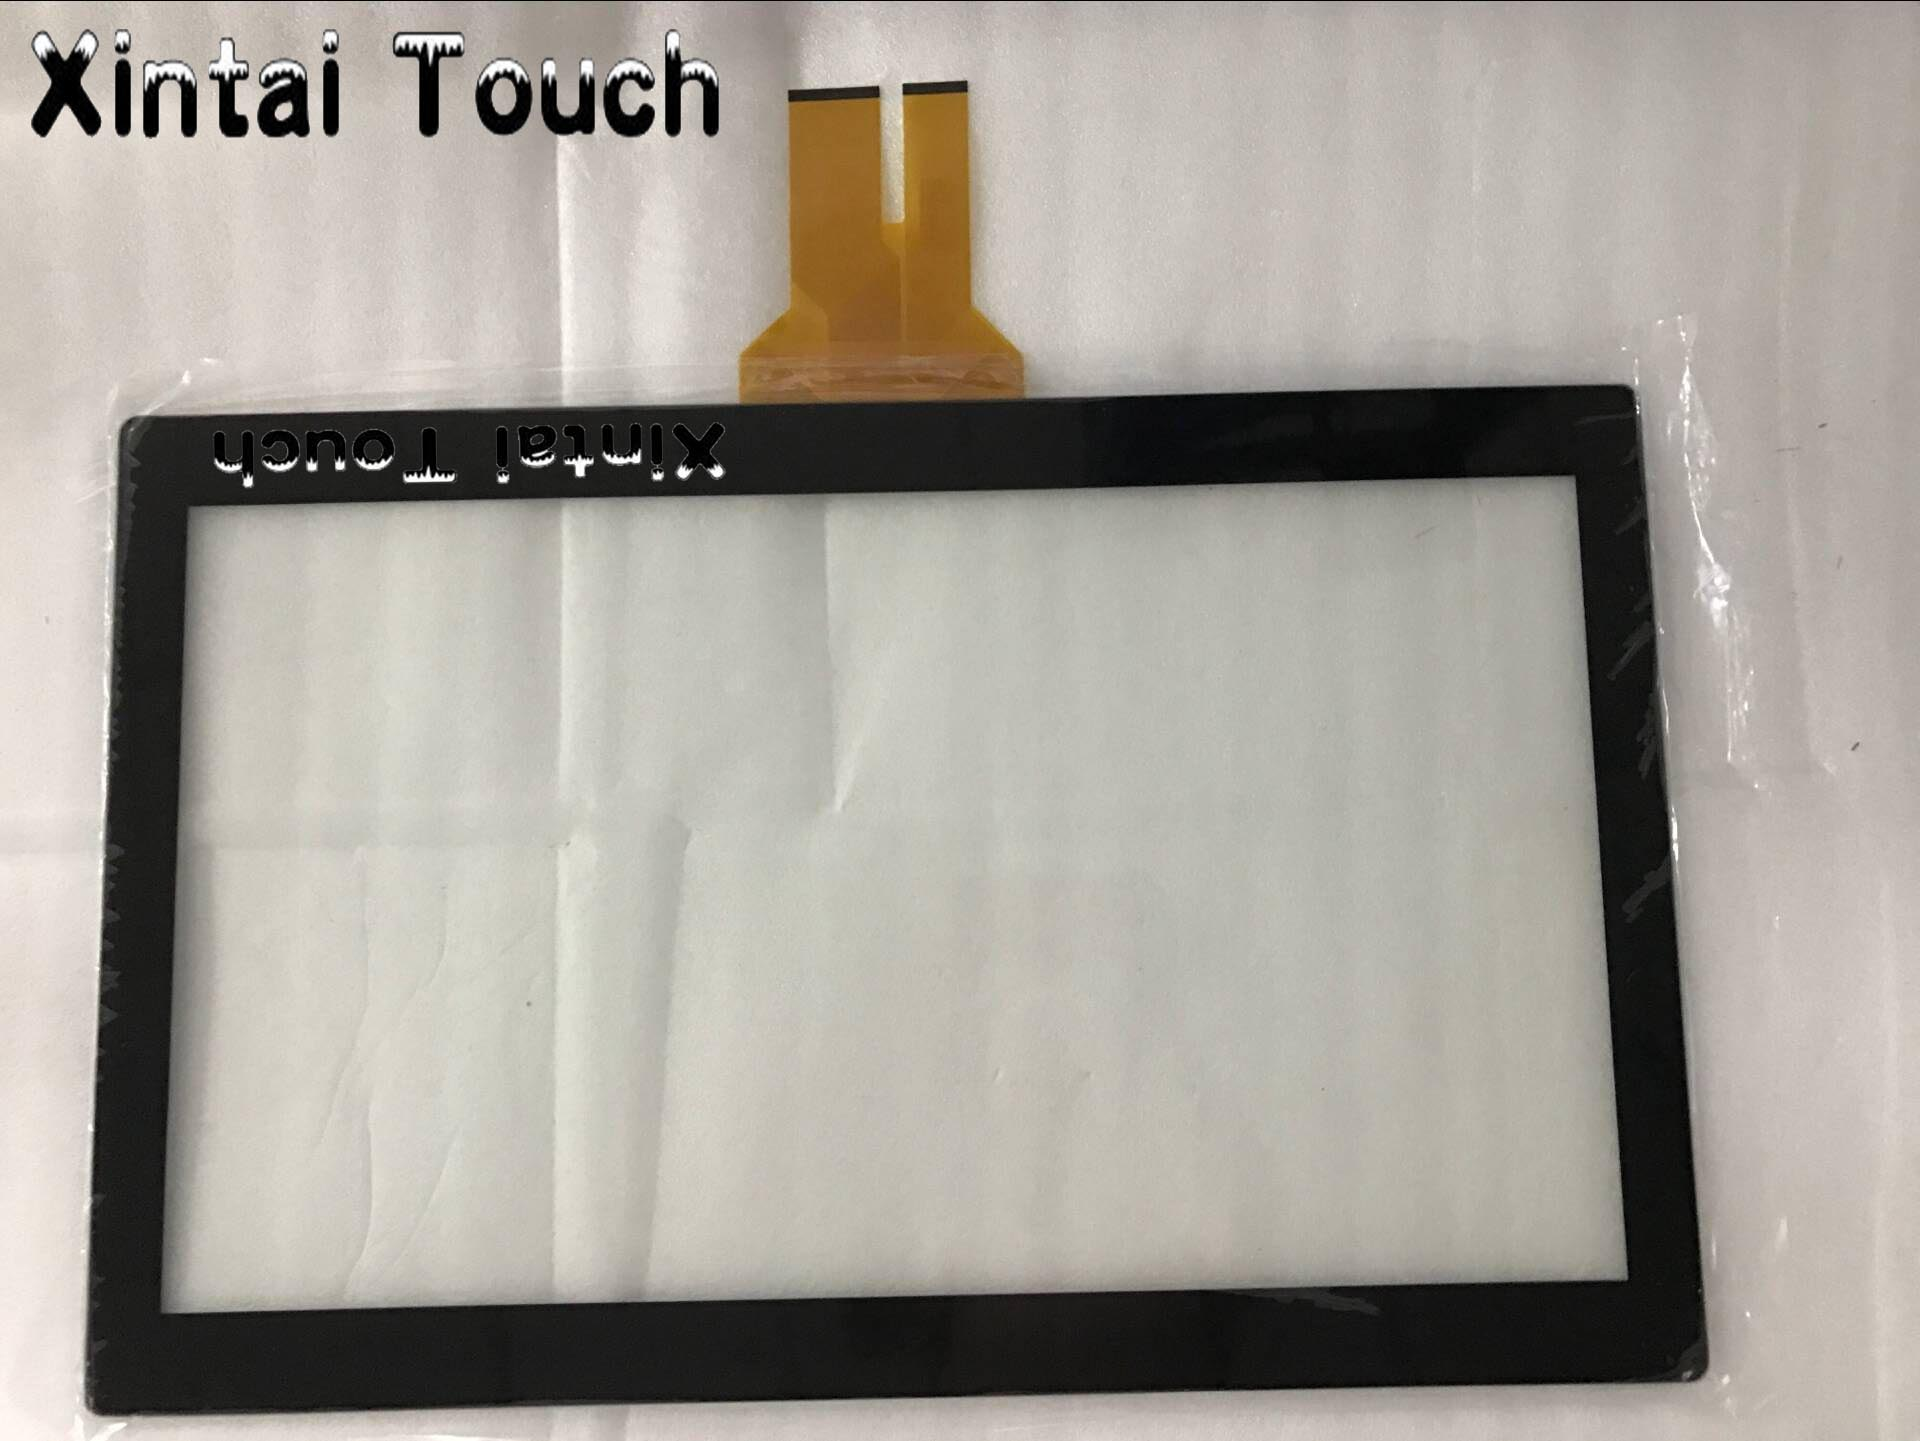 Good price 32 projected capacitive touch screen multi pcap touch good price 32 projected capacitive touch screen multi pcap touch panel overlay kit with 10 points fandeluxe